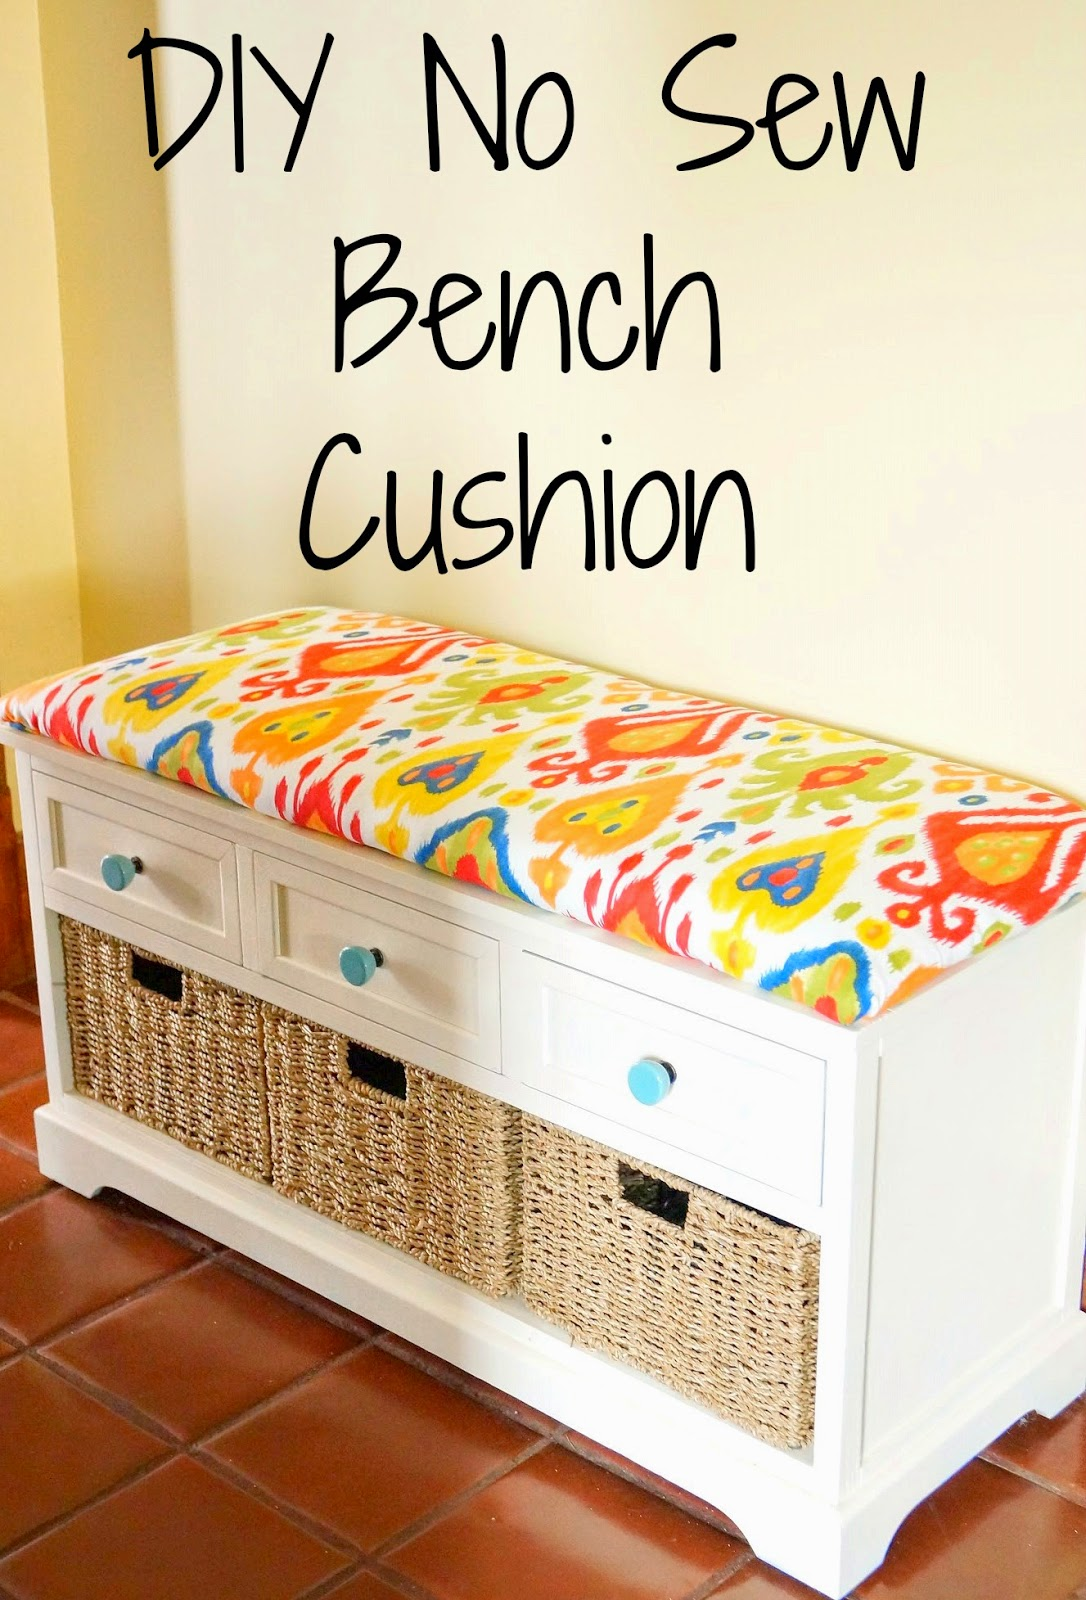 How Much Fabric To Cover A Chair Cushion Lowes Adirondack Plans Old House New Home